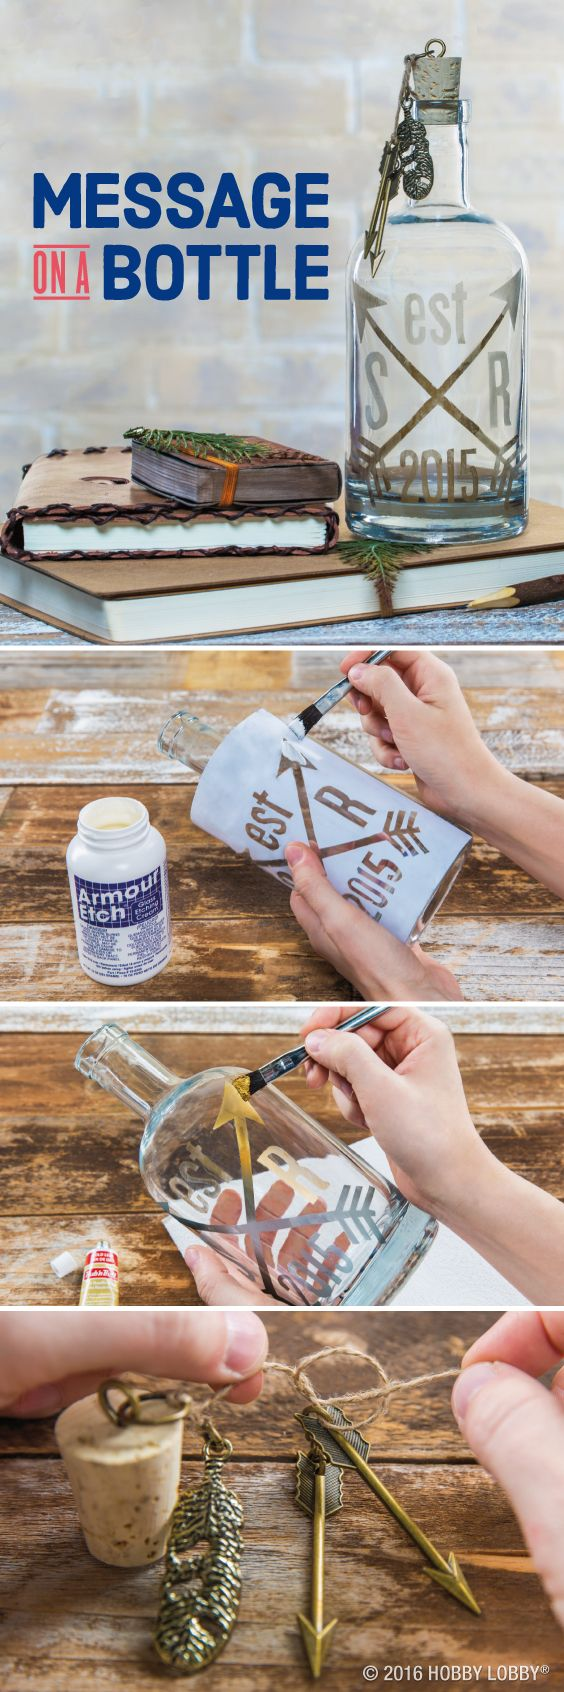 Add some serious style points to your decor by adding gold leafing to glass bottles!    To DIY: 1) Trace design onto self-adhesive stencil blank, & cut out with craft knife. Position stencil on bottle, & apply glass etching cream as shown. Wash off after a few minutes, & remove stencil. 2) Brush gold leaf on design, & wipe excess with paper towel. 3) Attach eyehook to cork stopper. Then connect jump rings to eyehook & charms. Secure charms to stopper with twine knots.